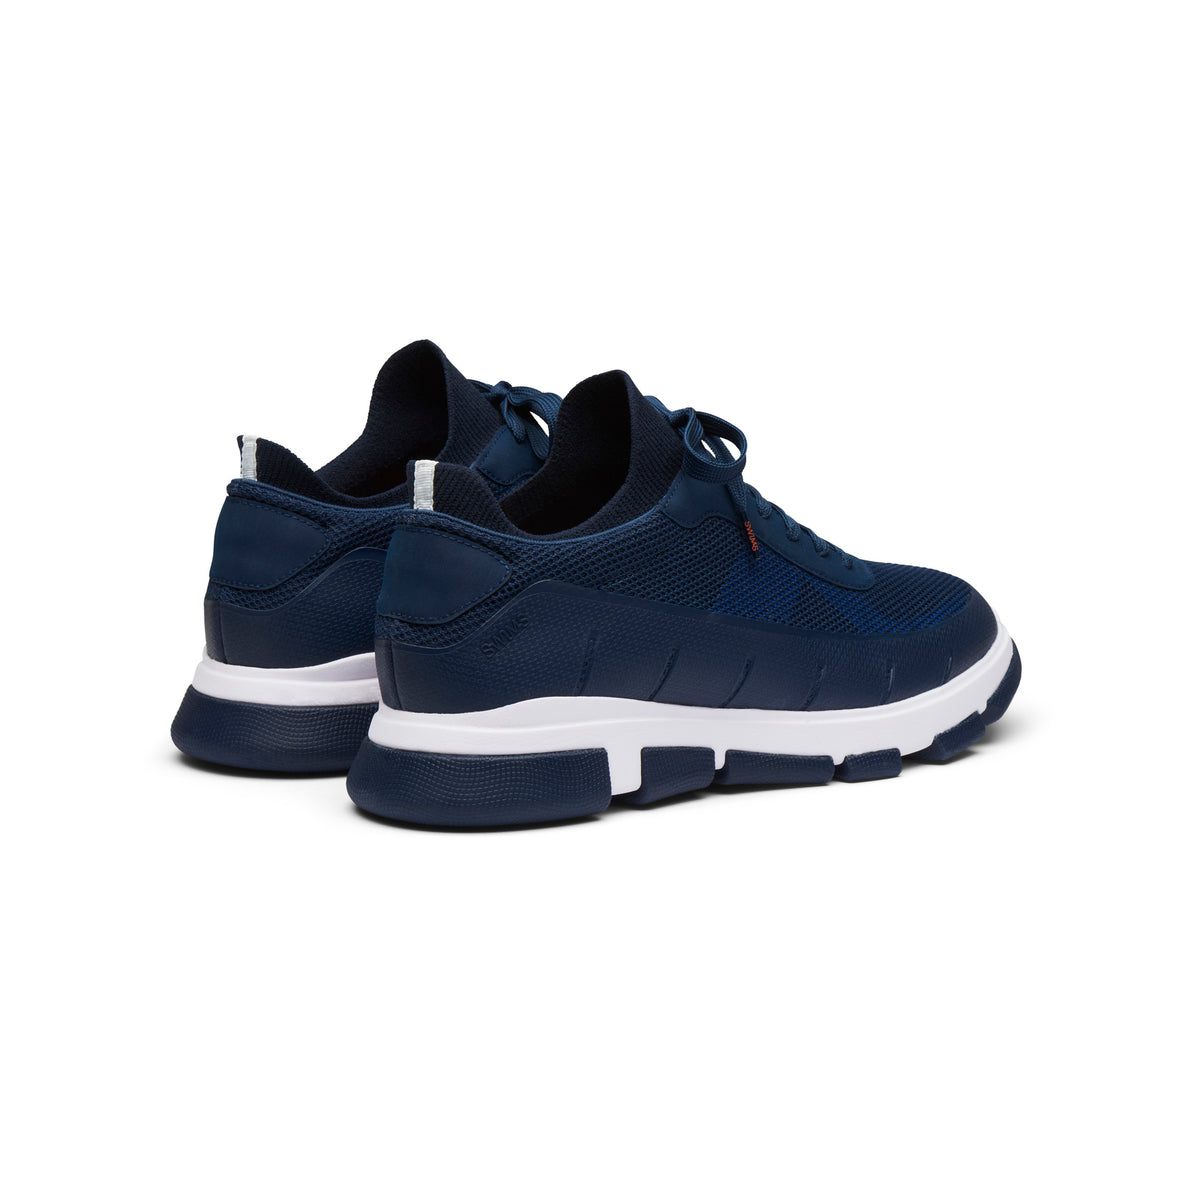 City Hiker Sneaker - background::white,variant::Navy/White